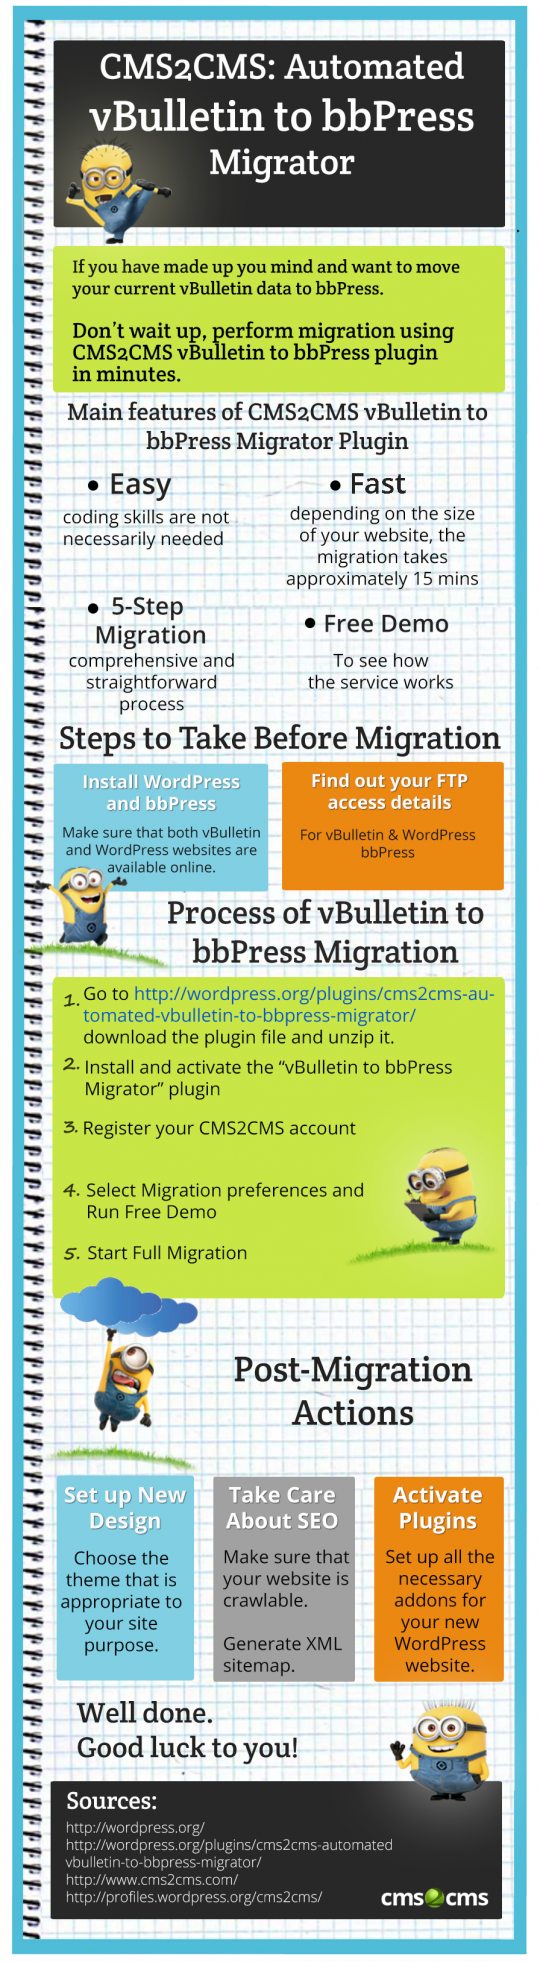 vBulletin to bbPress Migration Plugin: Why & How